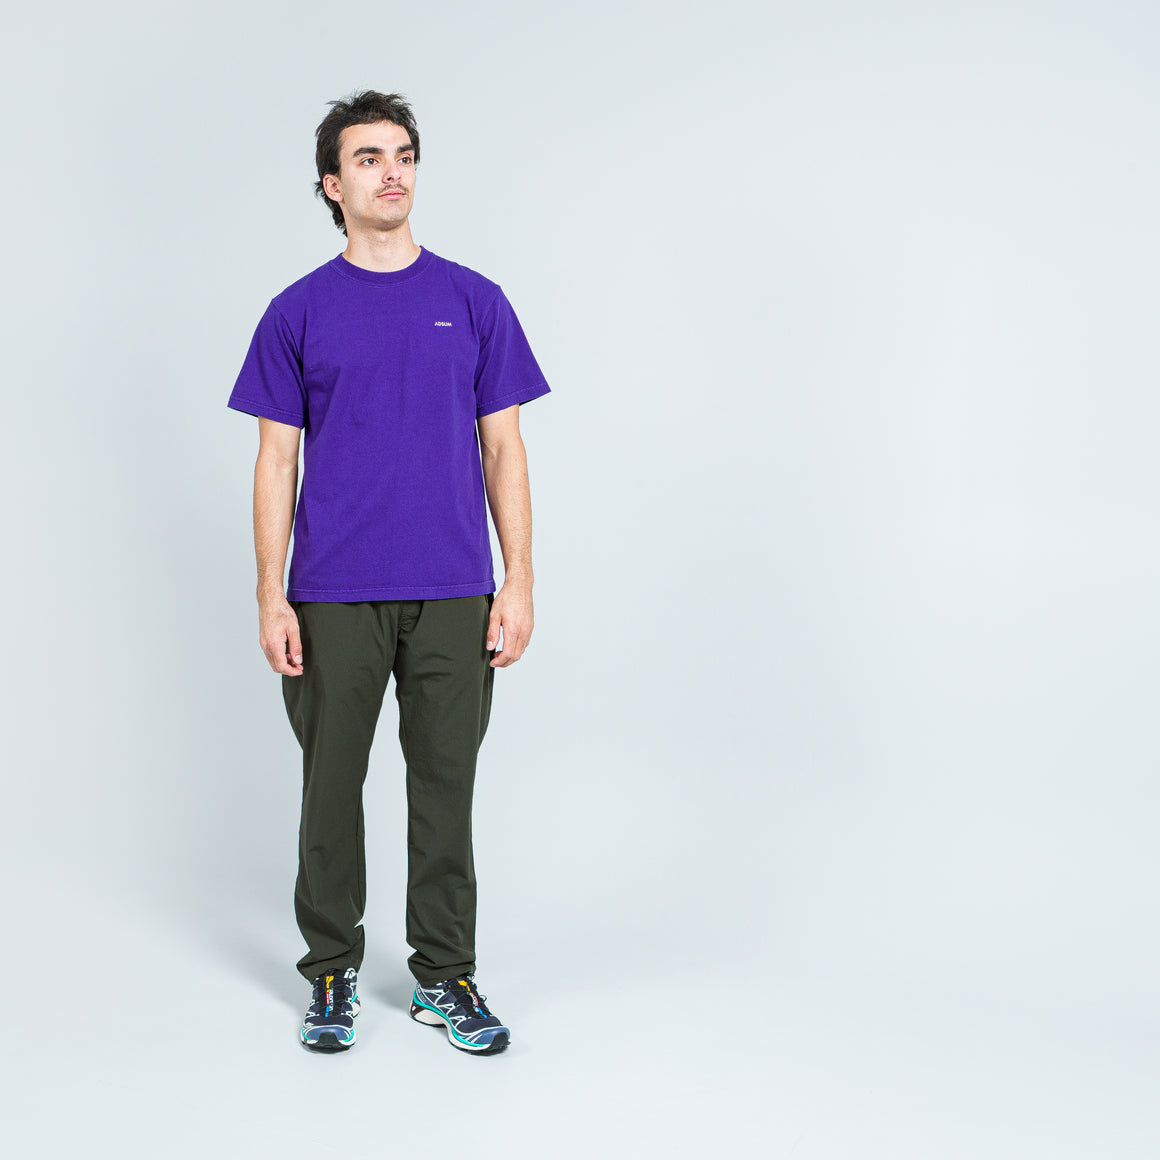 Adsum - New Poetry Tee - Purple - Up There